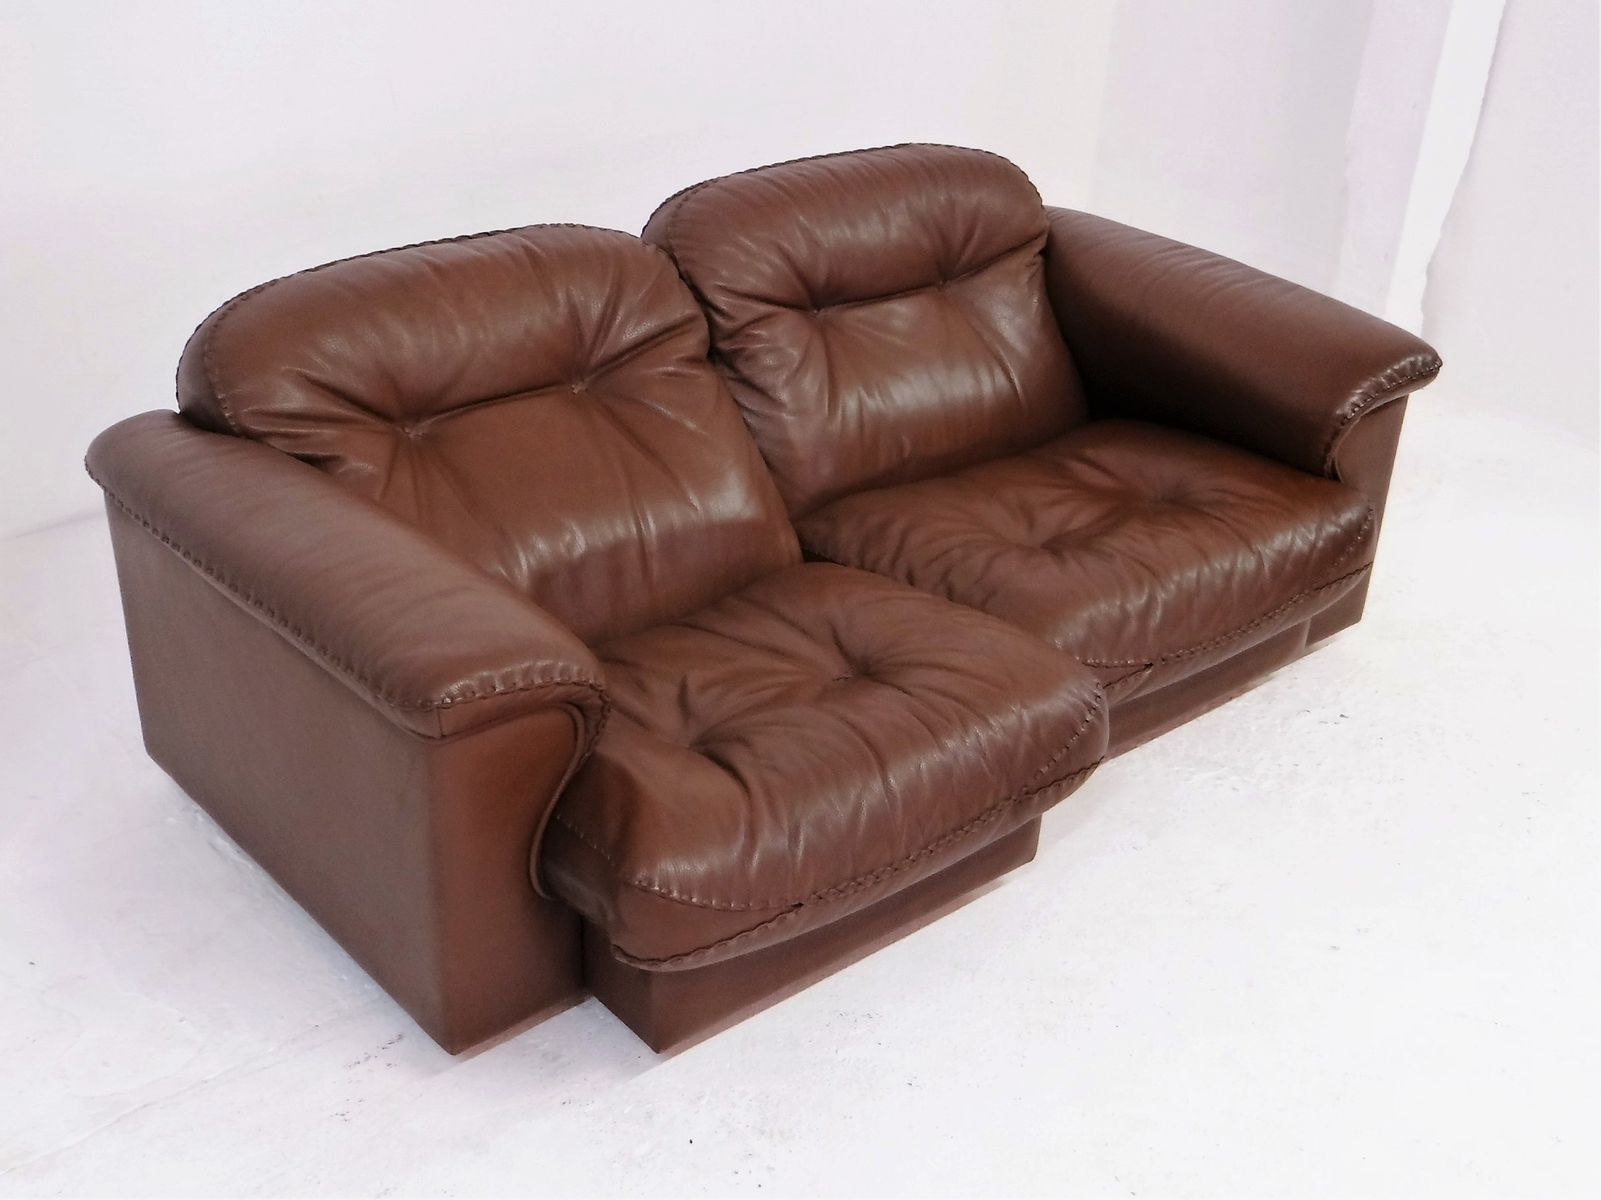 Swiss Ds 101 Two Seater Leather Lounge Sofa From De Sede 1980s For Sale At Pamono